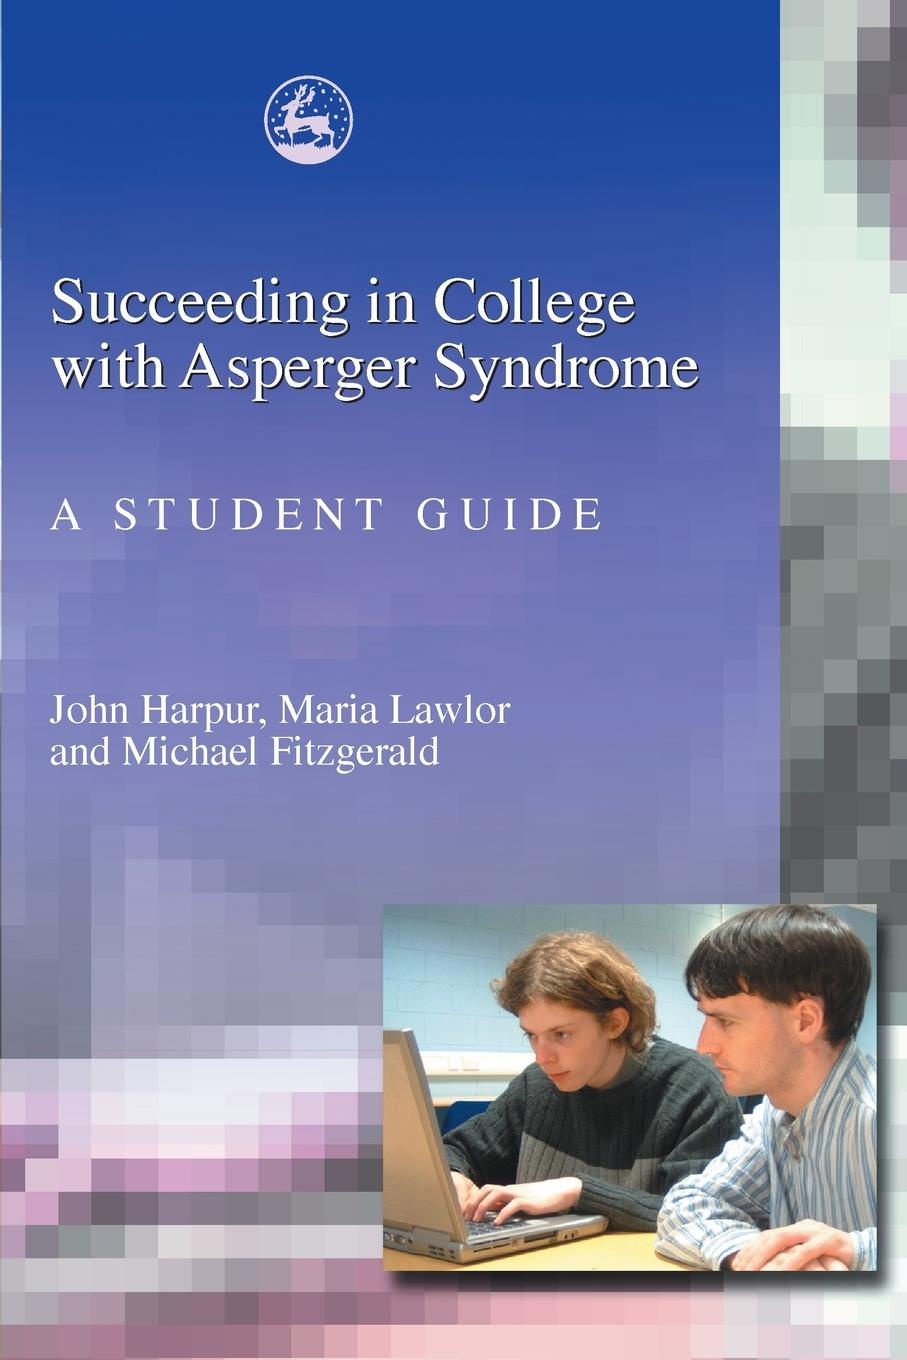 John Harpur, Maria Lawlor, Michael Fitzgerald Succeeding in College with Asperger Syndrome. A Student Guide